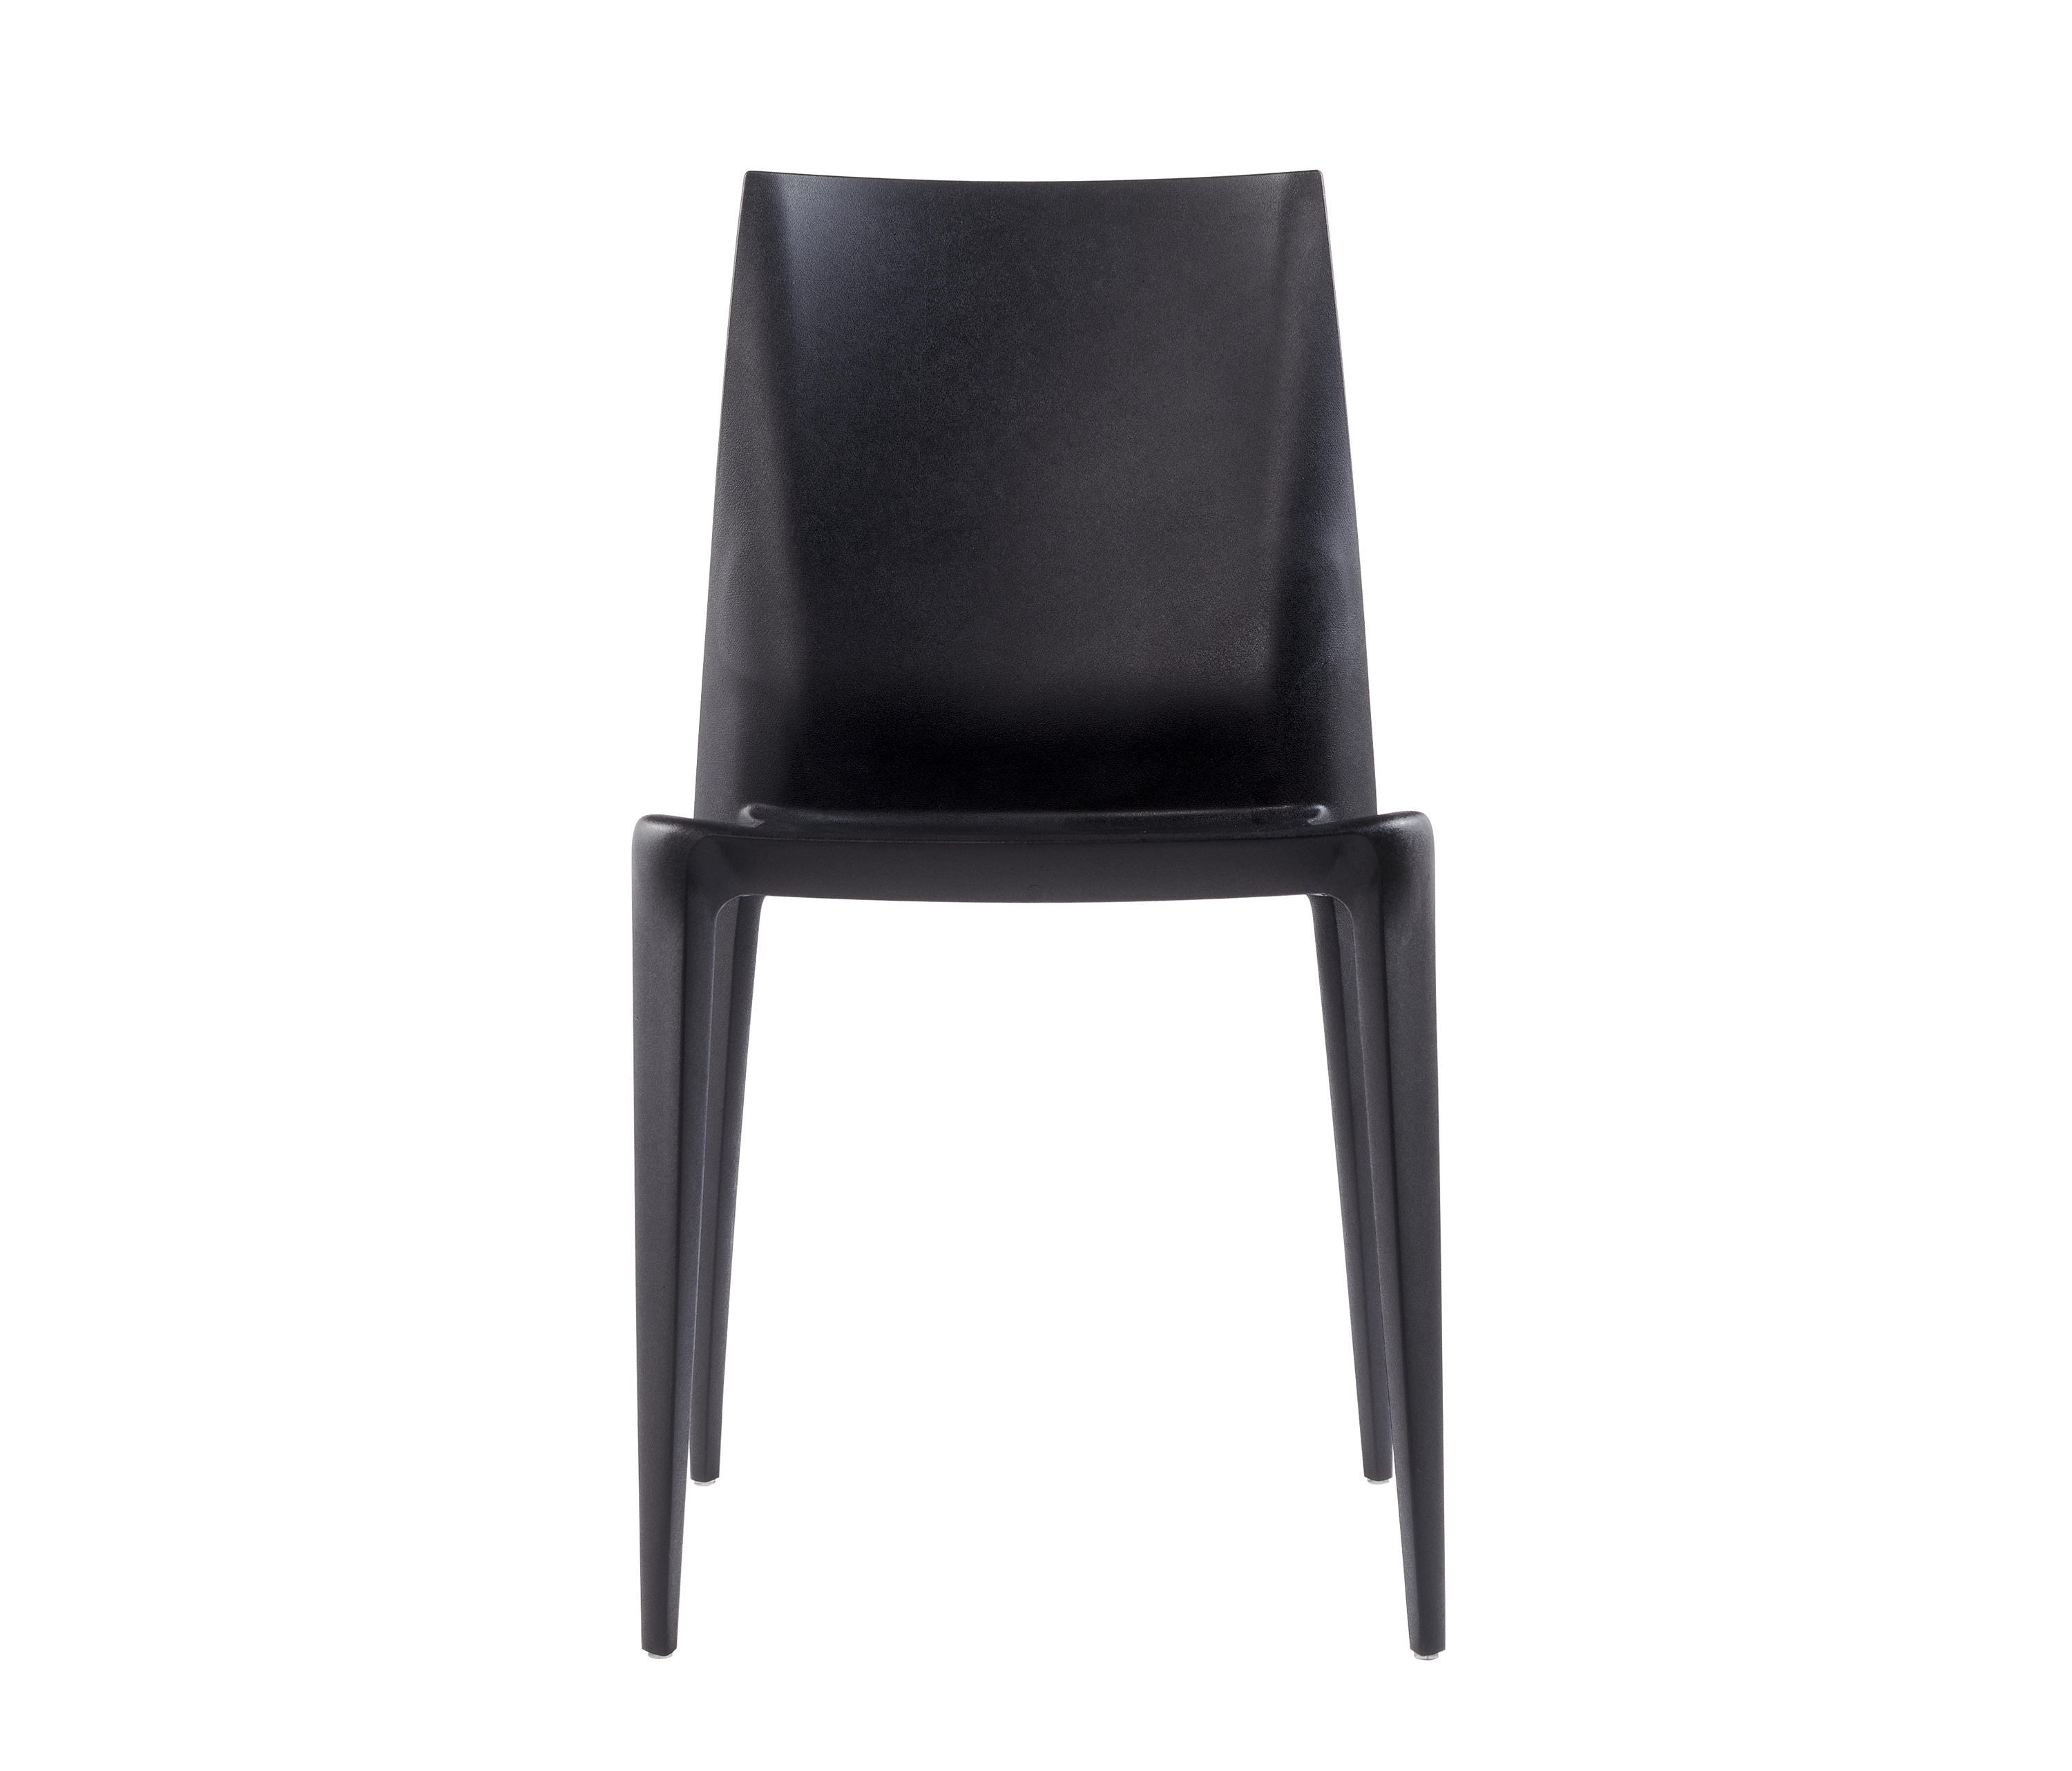 the bellini chair  model   black  multipurpose chairs from  -  the bellini chair  model   black by heller  multipurpose chairs